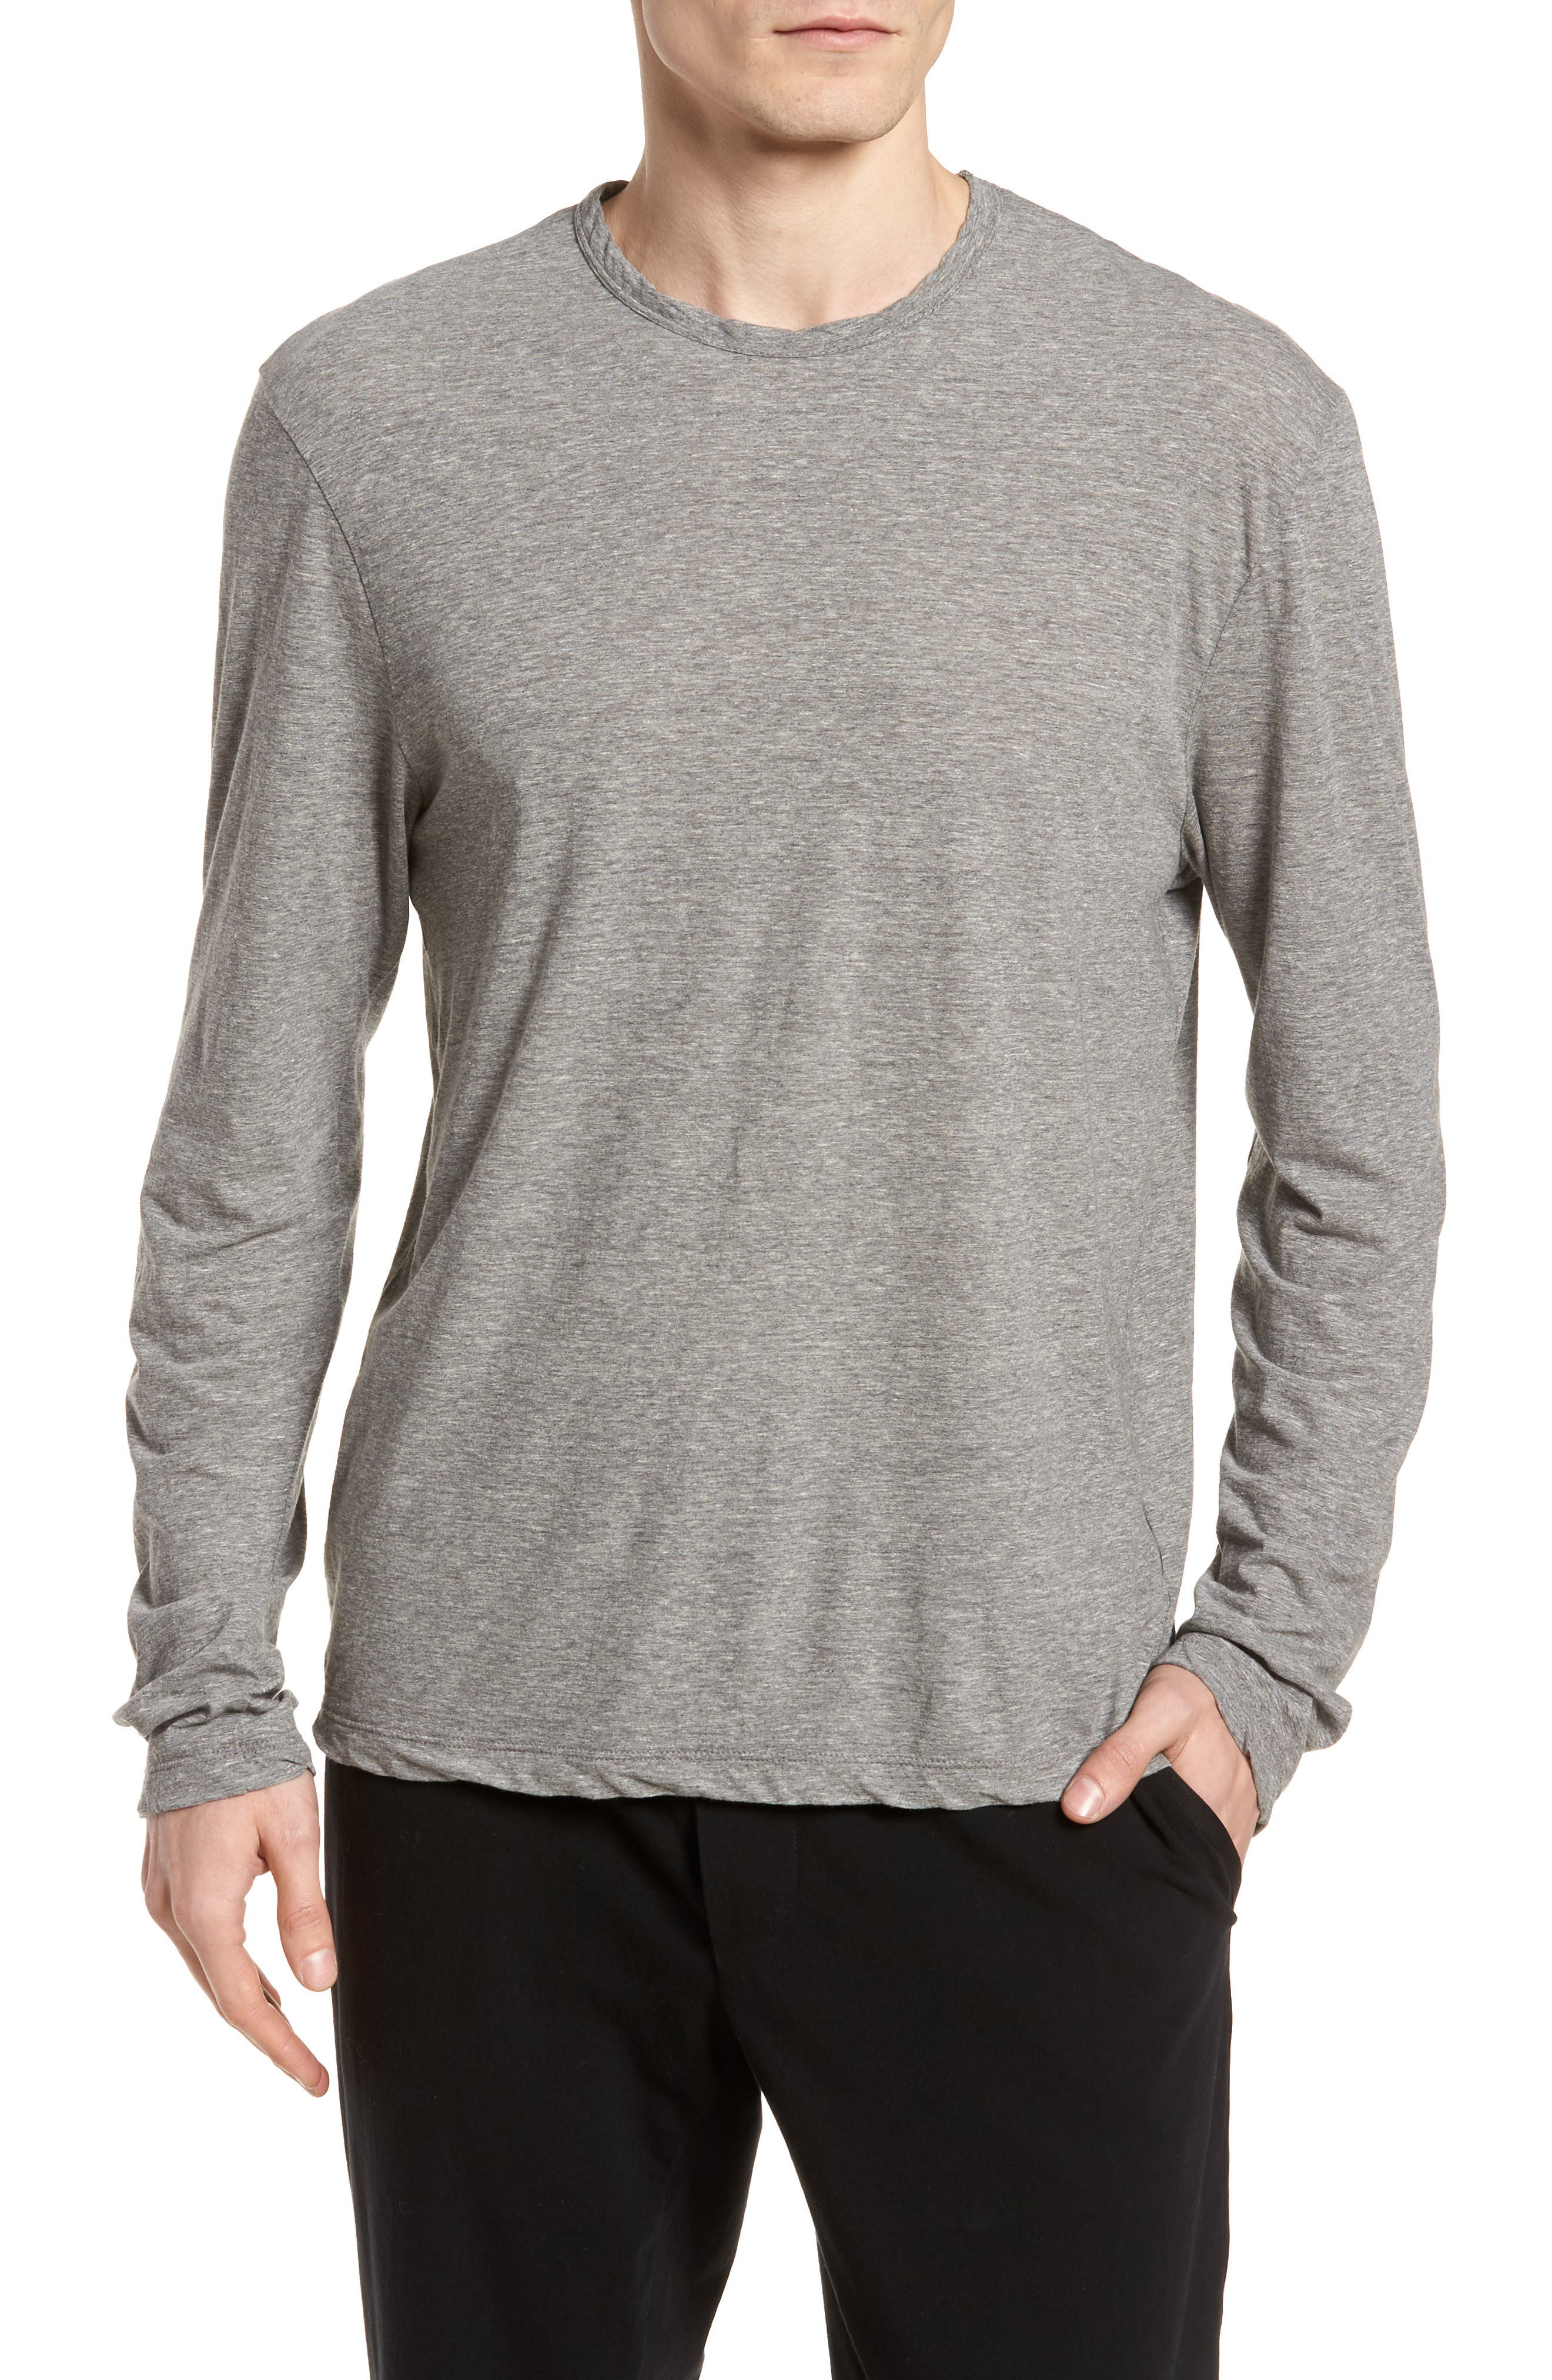 Jamers Perse High Twist Regular Fit Shirt,                             Main thumbnail 1, color,                             Heather Grey